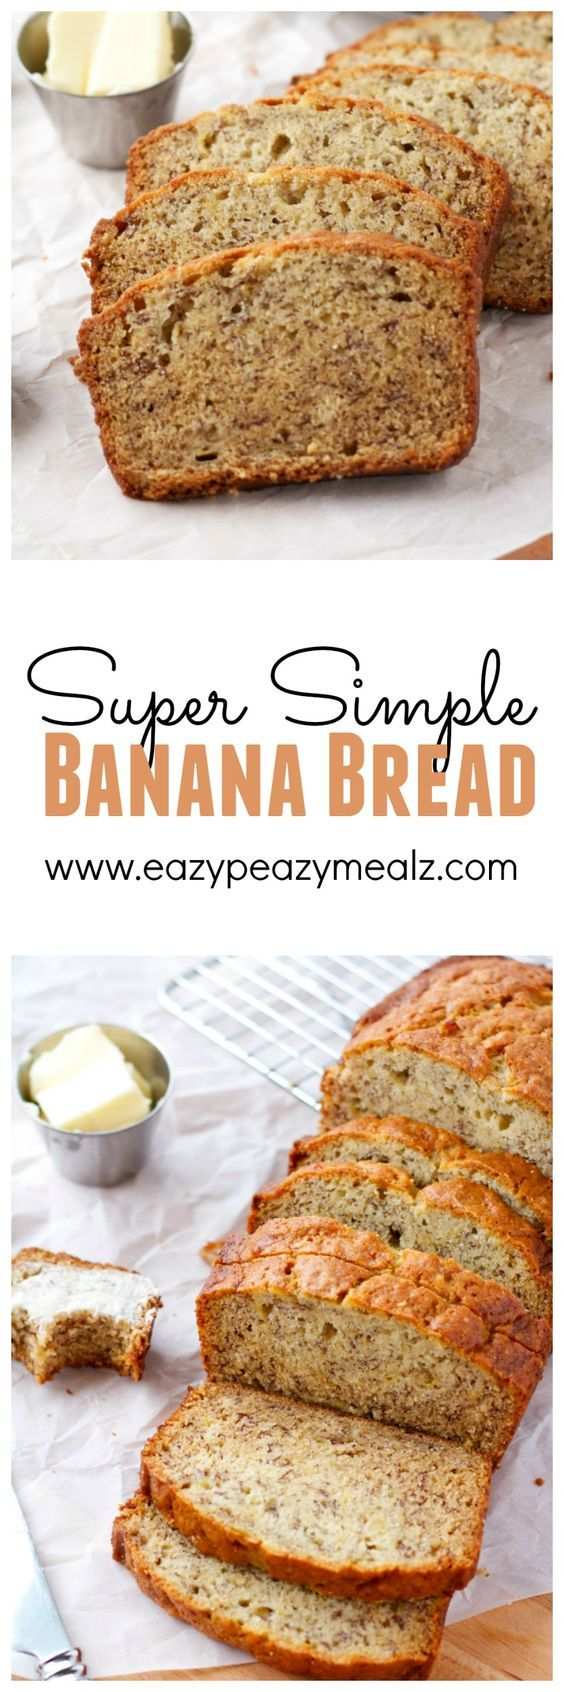 Super Simple Banana Bread: the easiest and best banana bread! You don't even need a mixer and it turns out awesome every time! - Eazy Peazy Mealz